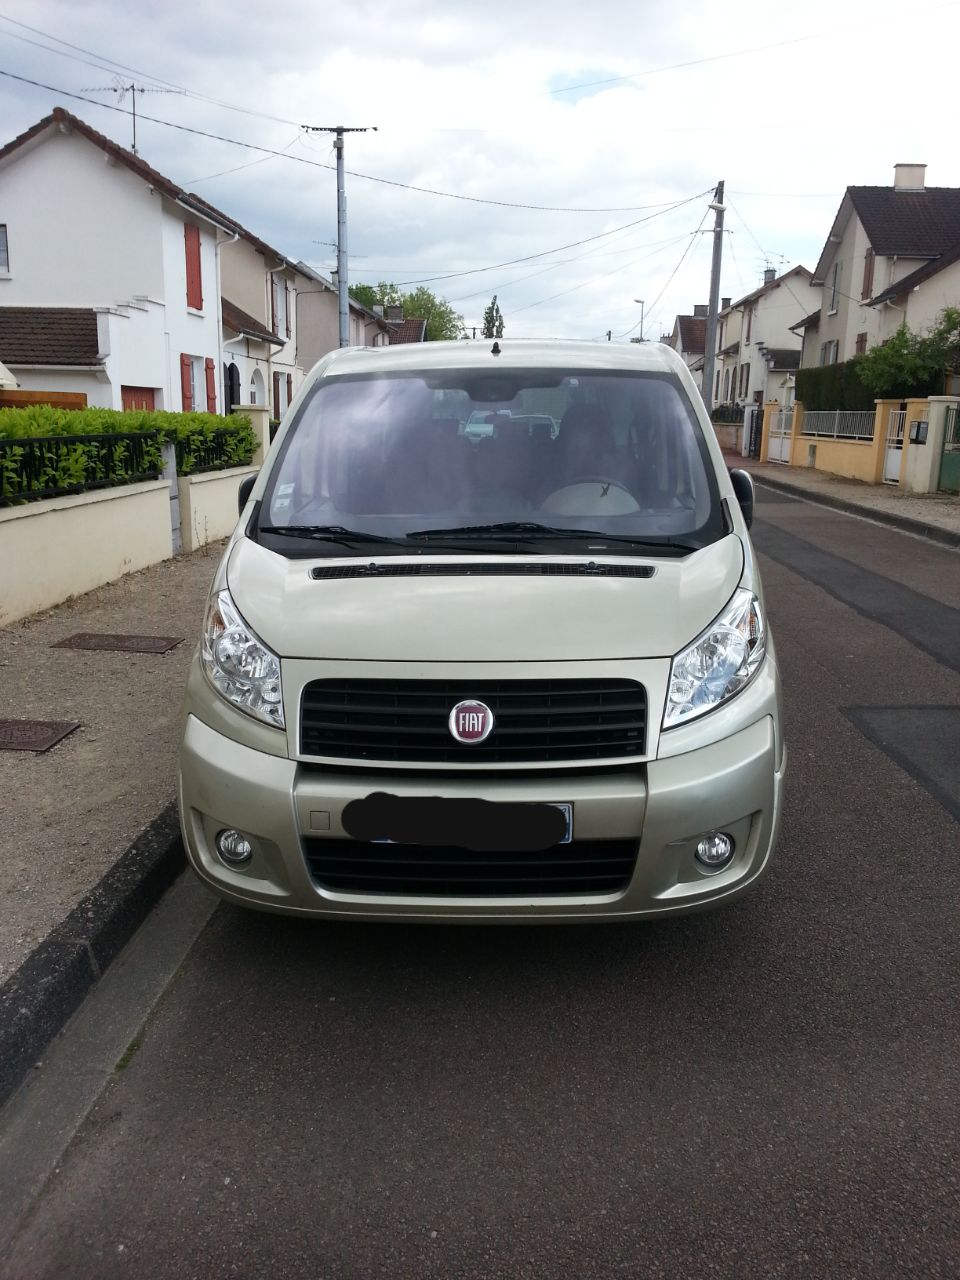 fiat scudo panorama 120 8 places, 2010, Diesel, 8 places